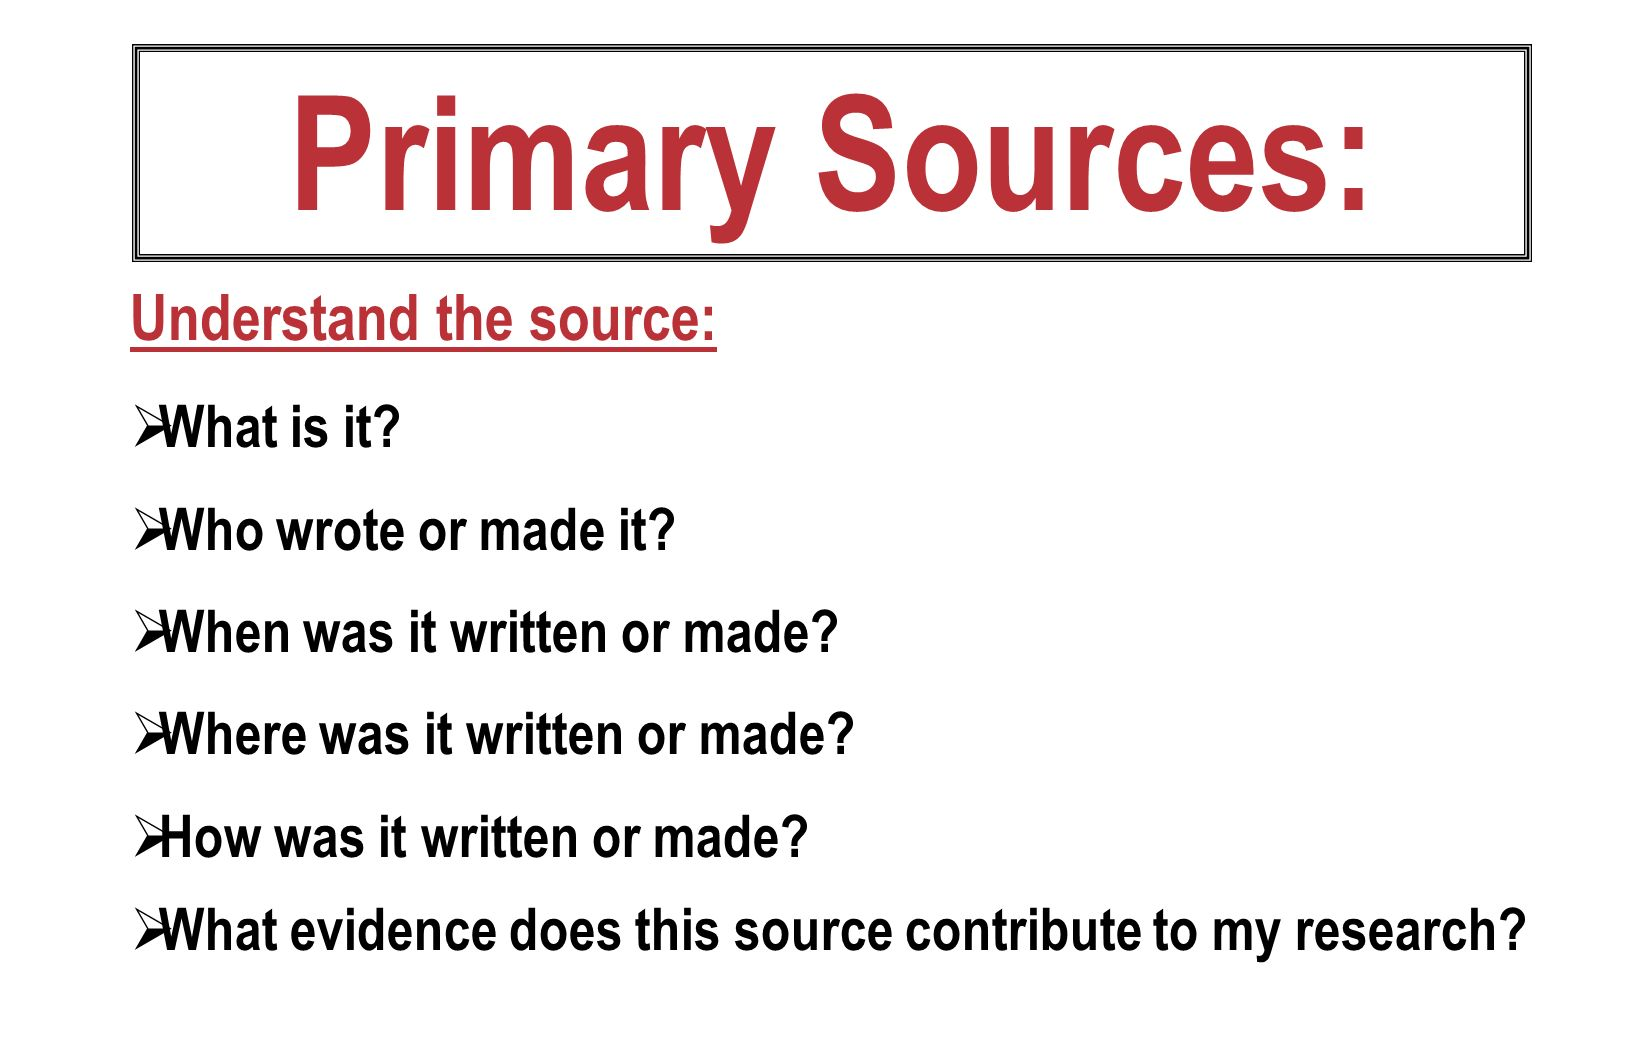 Primary Sources: Understand the source: What is it